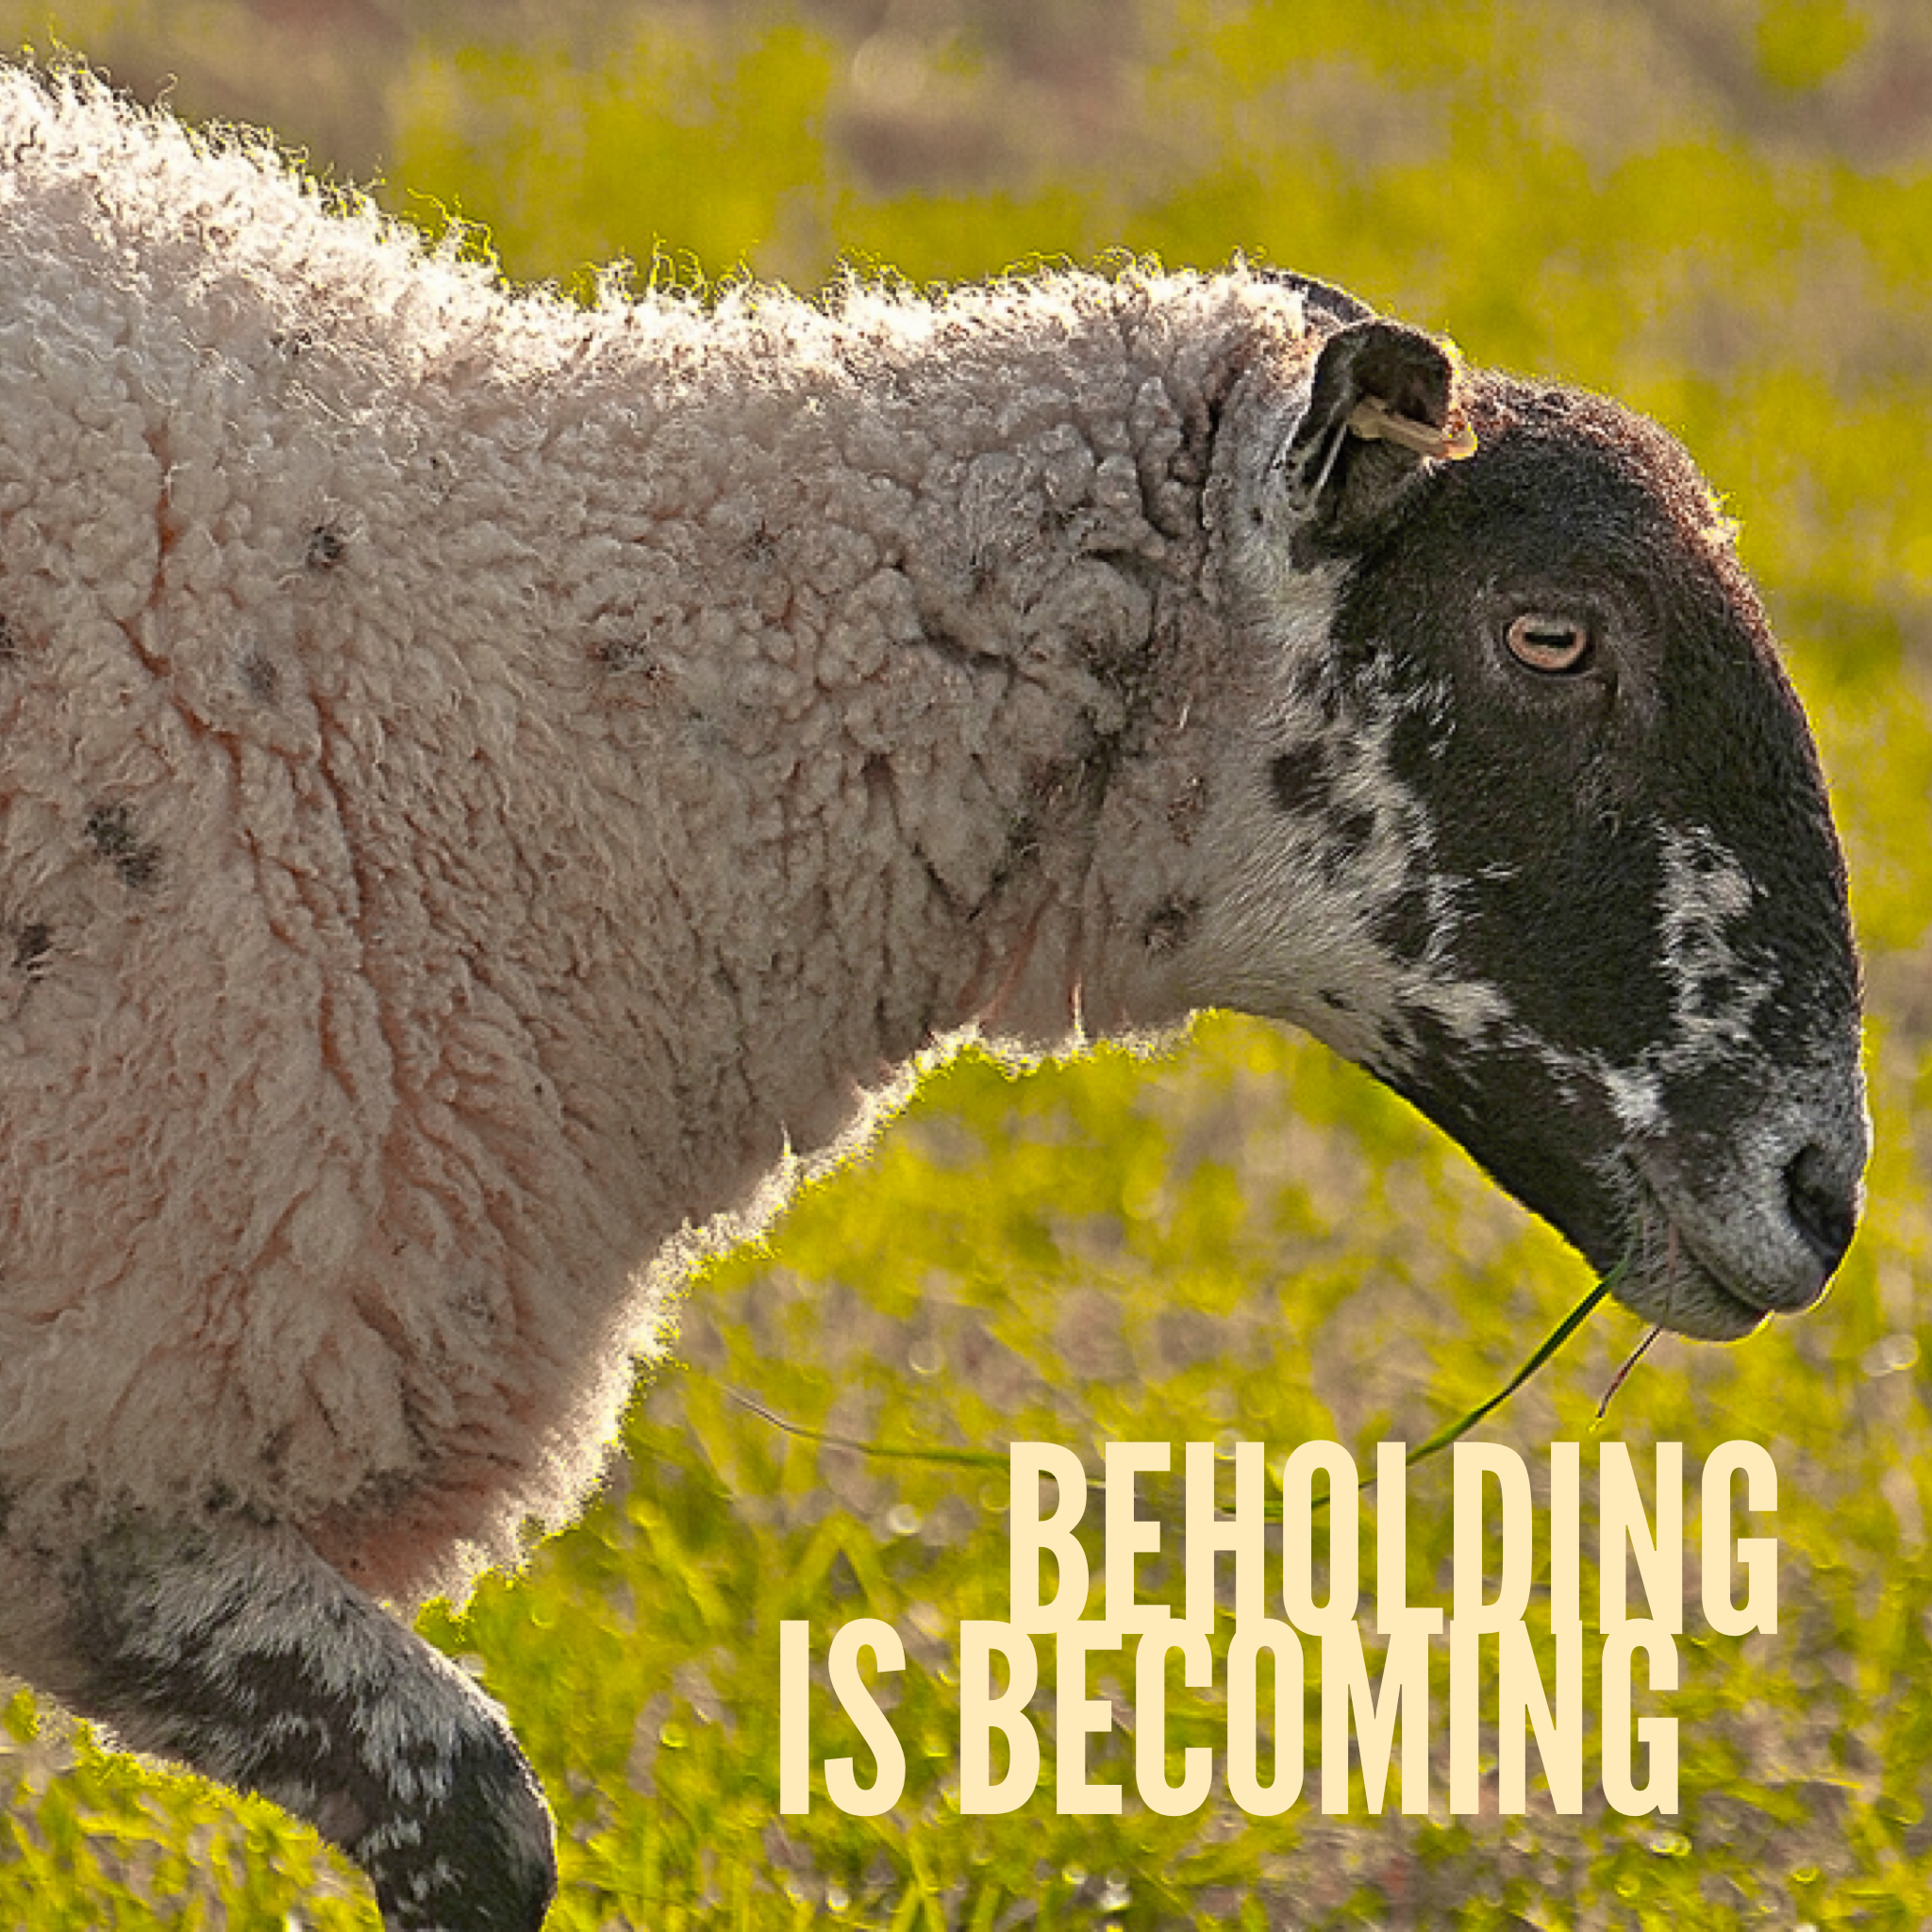 Beholding is Becoming